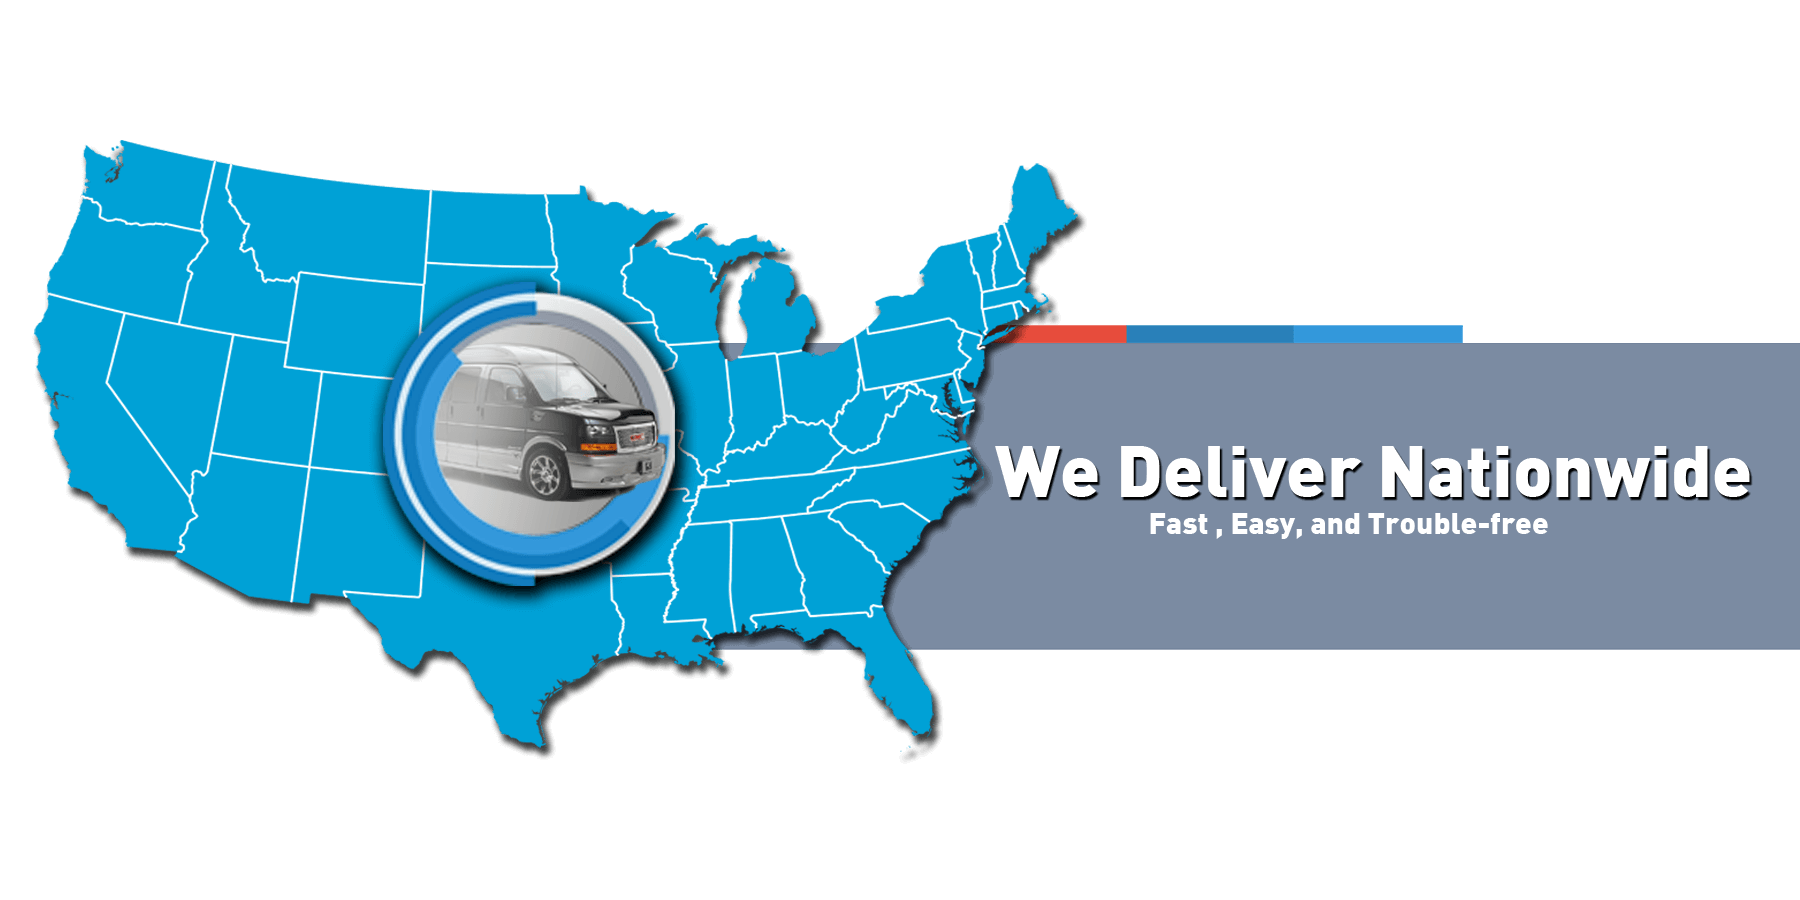 Van Delivery Nationwide